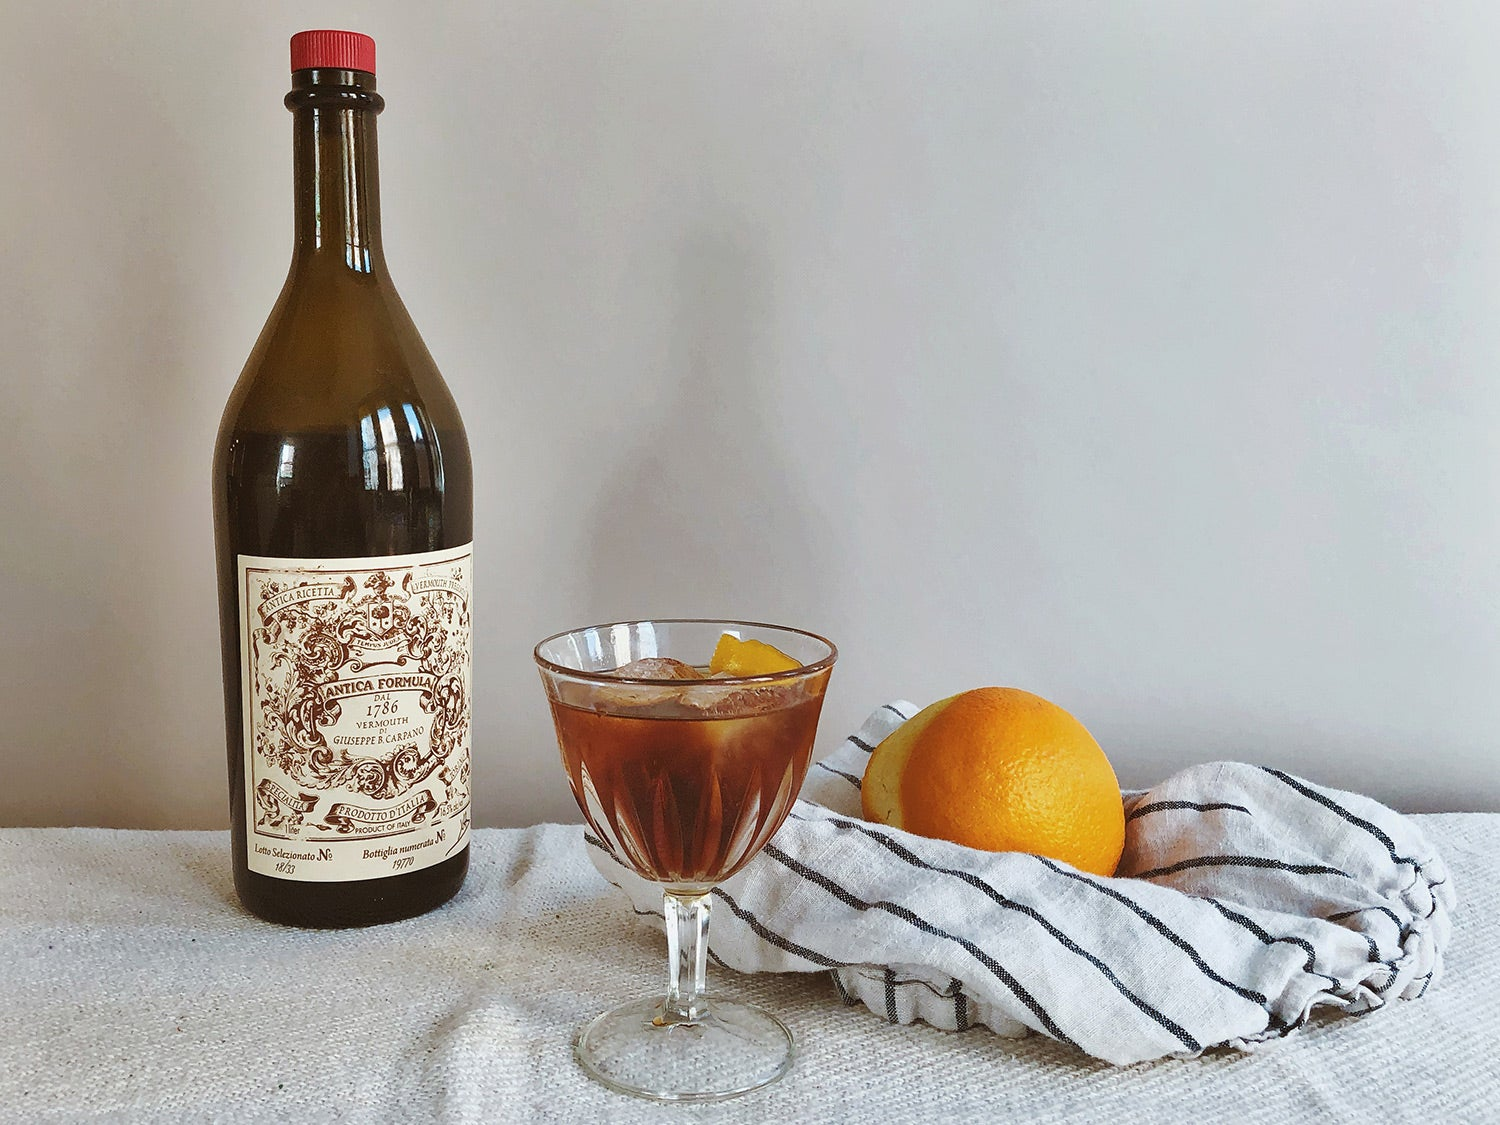 Carpano Antica Formula on the table with fruit